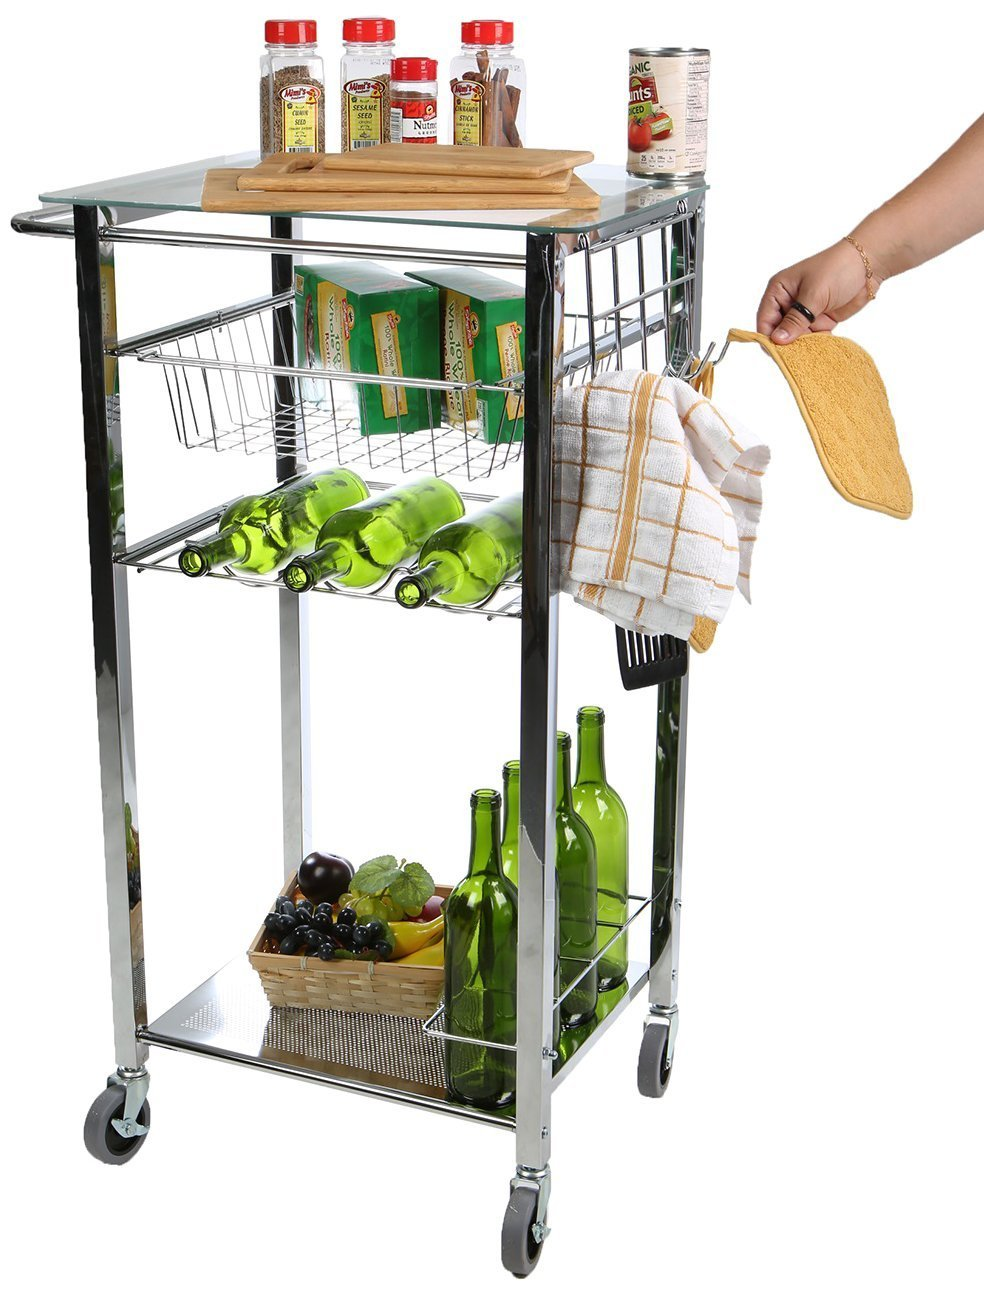 Purchase mind reader glass top mobile kitchen cart with wine bottle holder wine rack towel holder perfect kitchen island for cooking utensils kitchen appliances and food storage silver